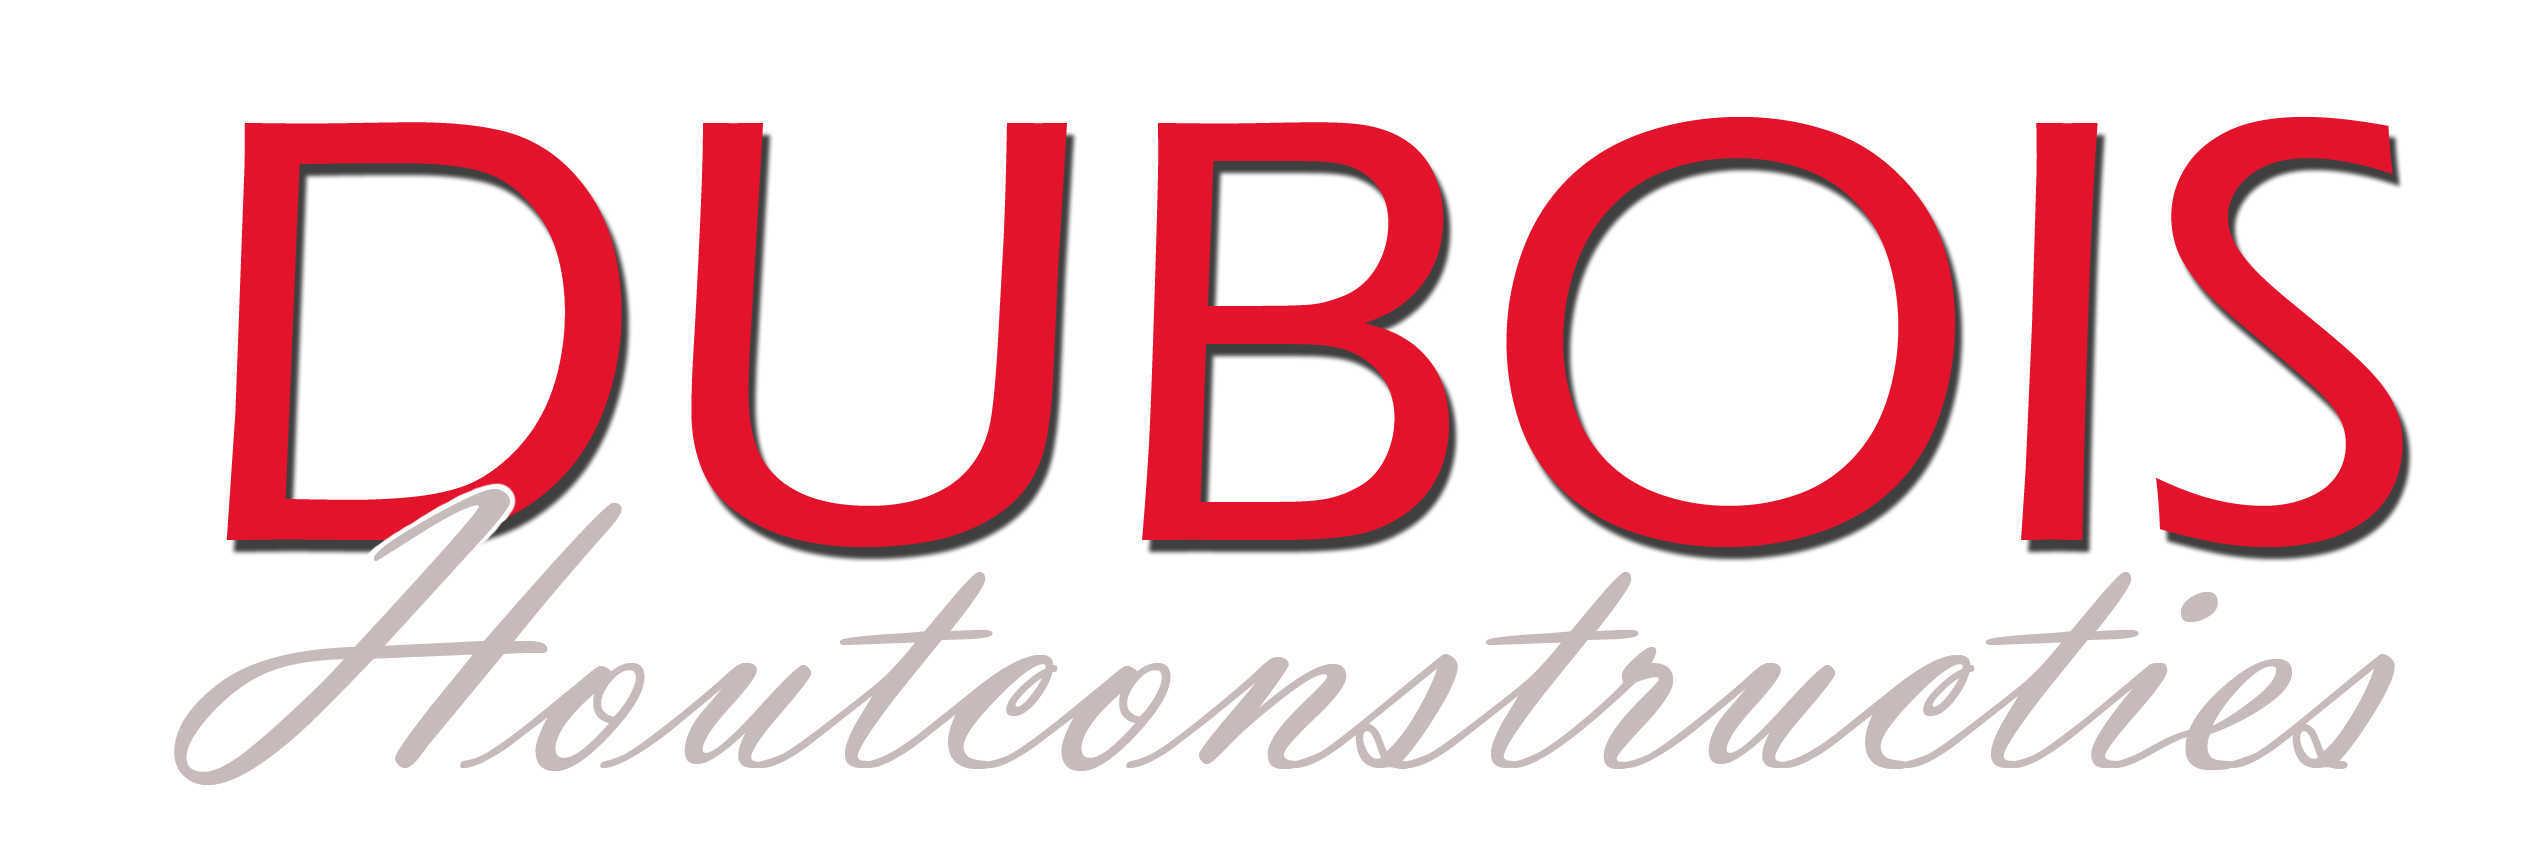 dubois_logo_red